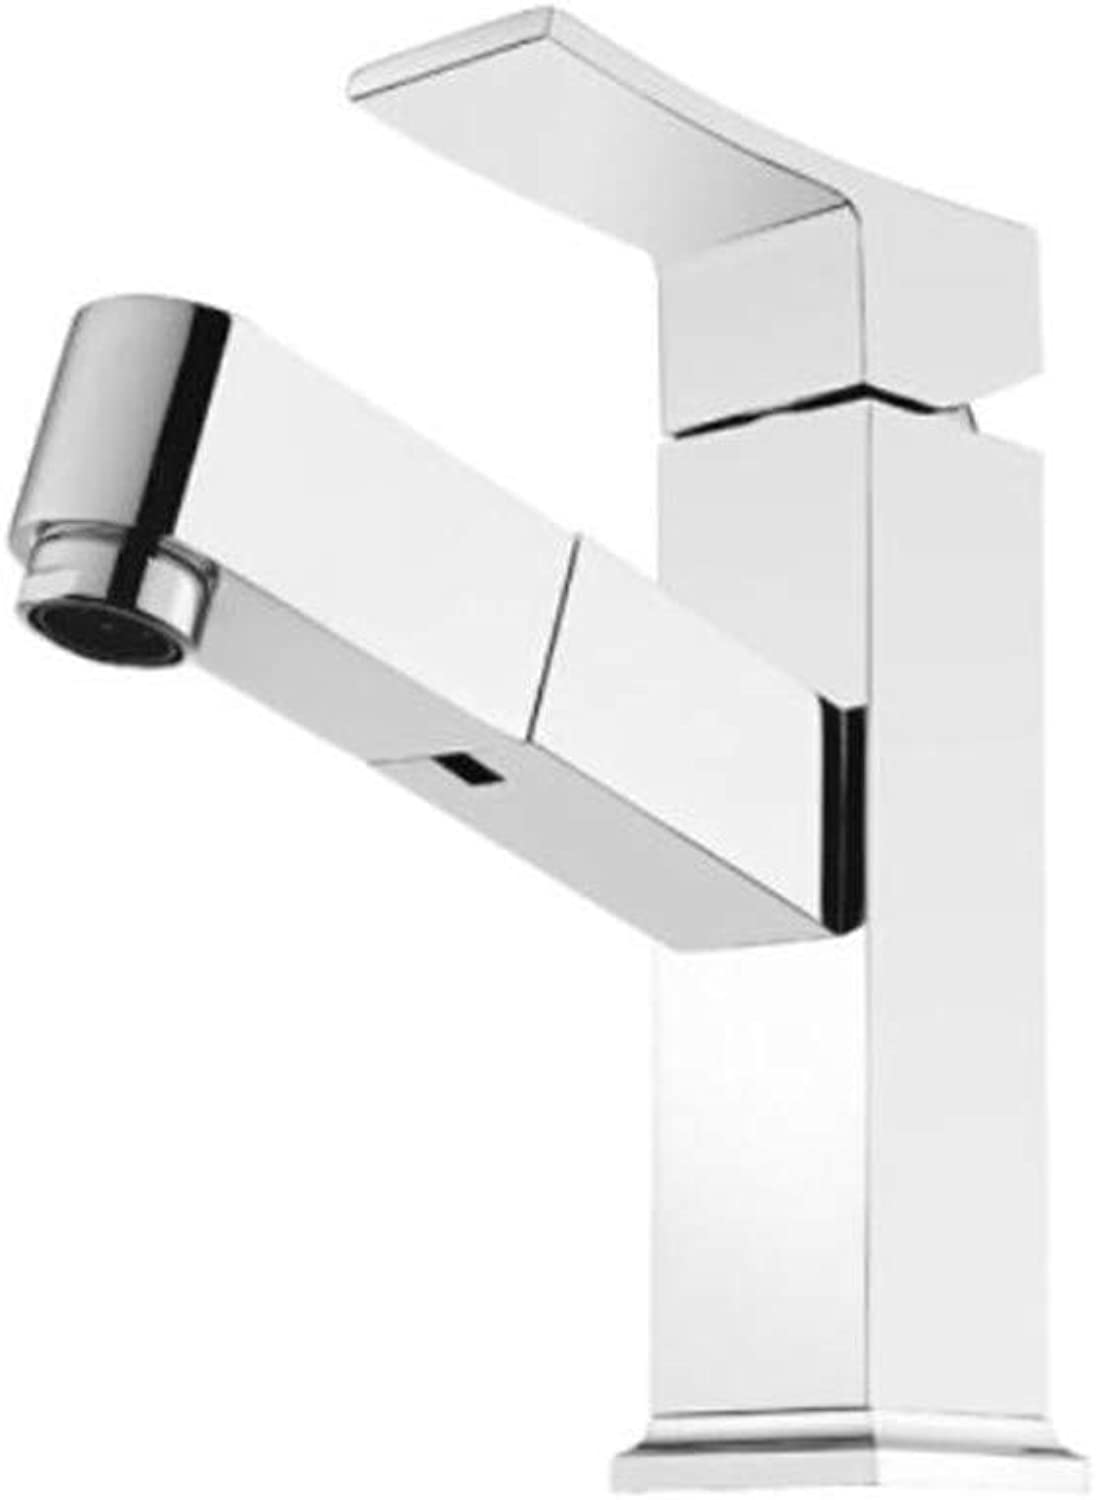 Faucet Waste Mono Spoutcopper Drawing Cold and Hot Water Faucet for Square Platform Lower Basin